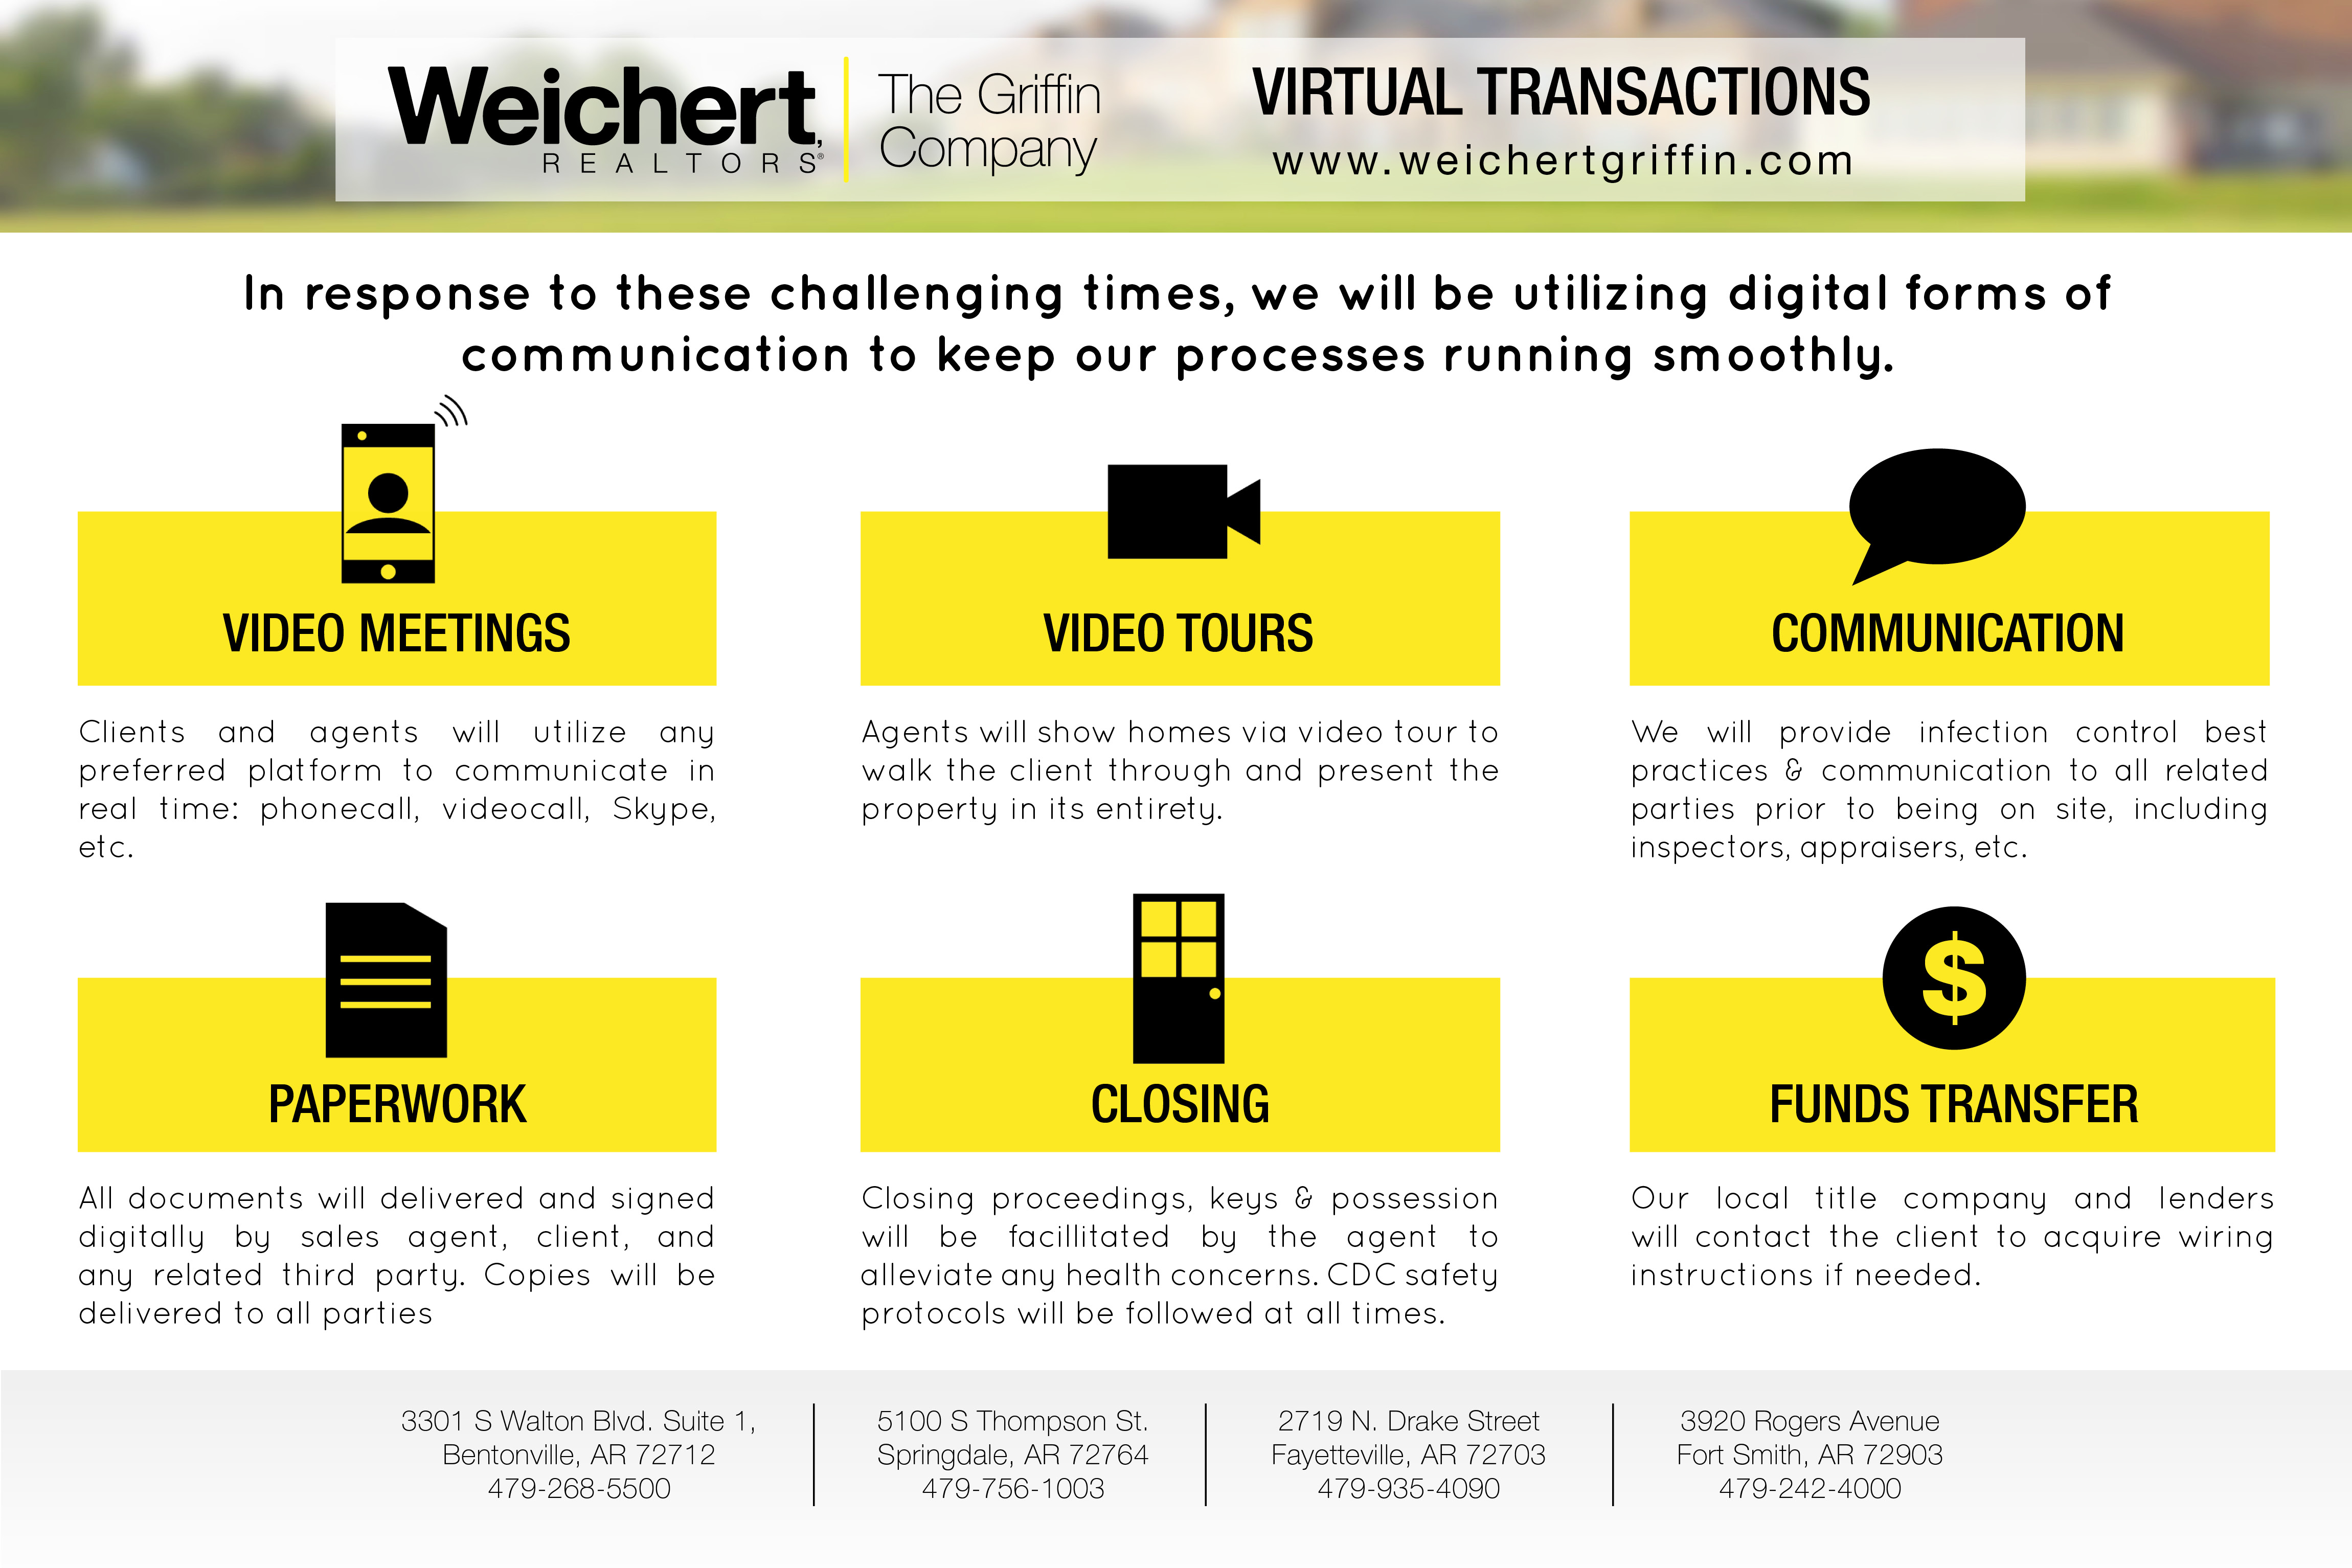 Weichert Griffin Virtual Transactions